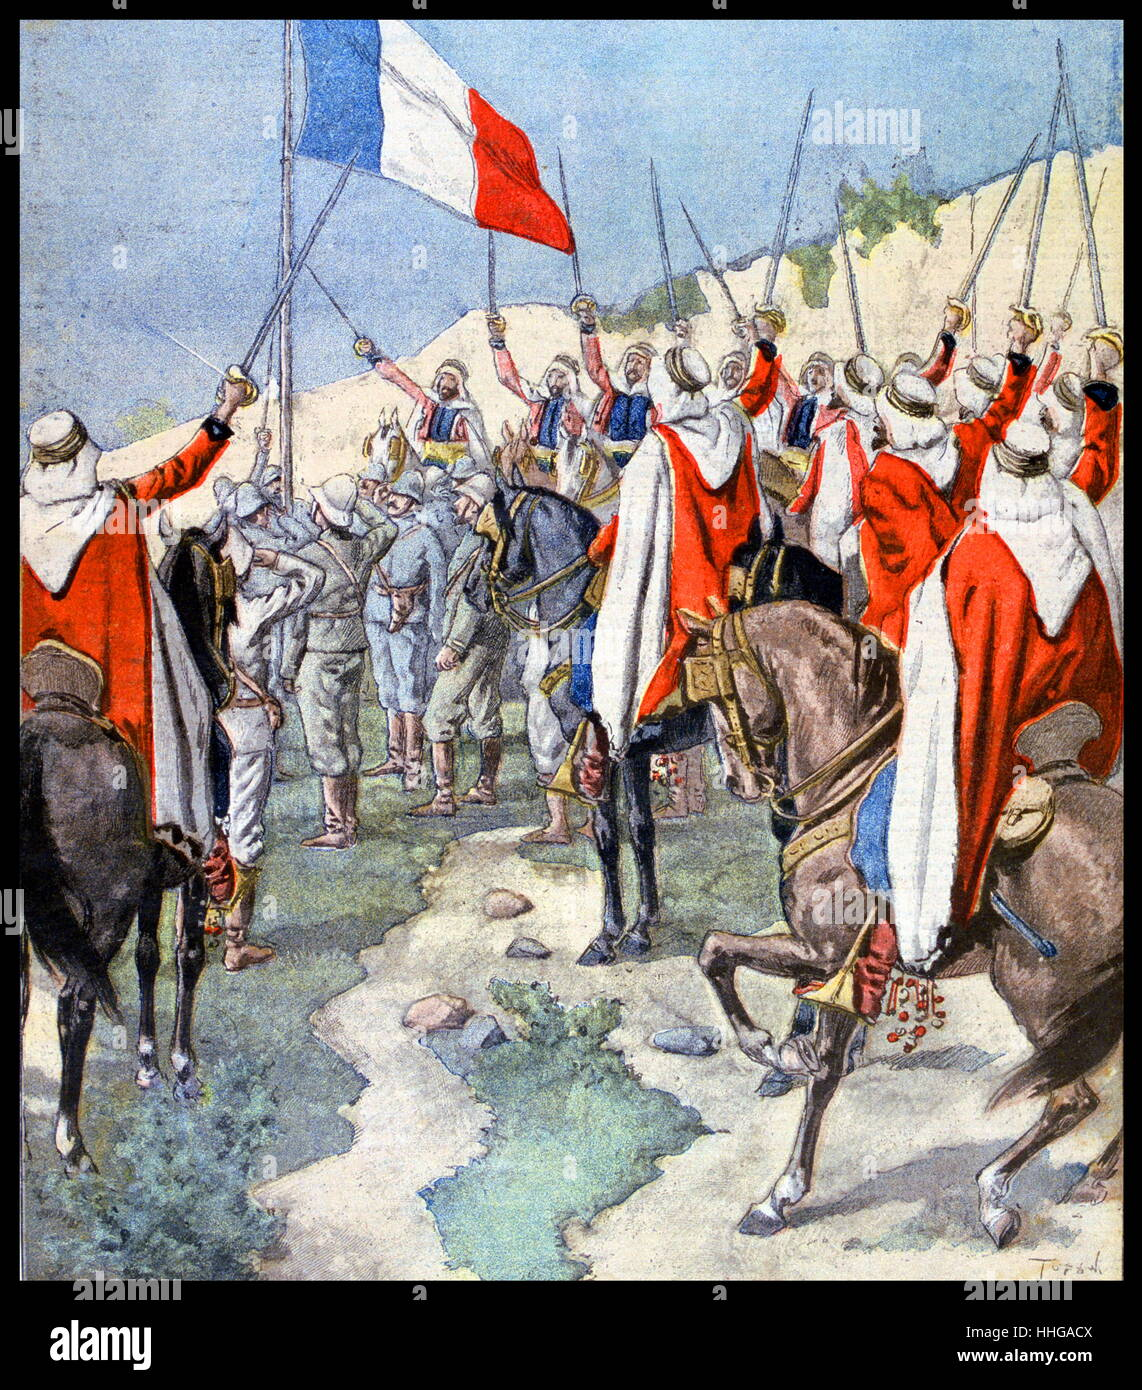 Illustration showing the French flag saluted by French and Arab colonial forces at Ain Salah an oasis town in central - Stock Image